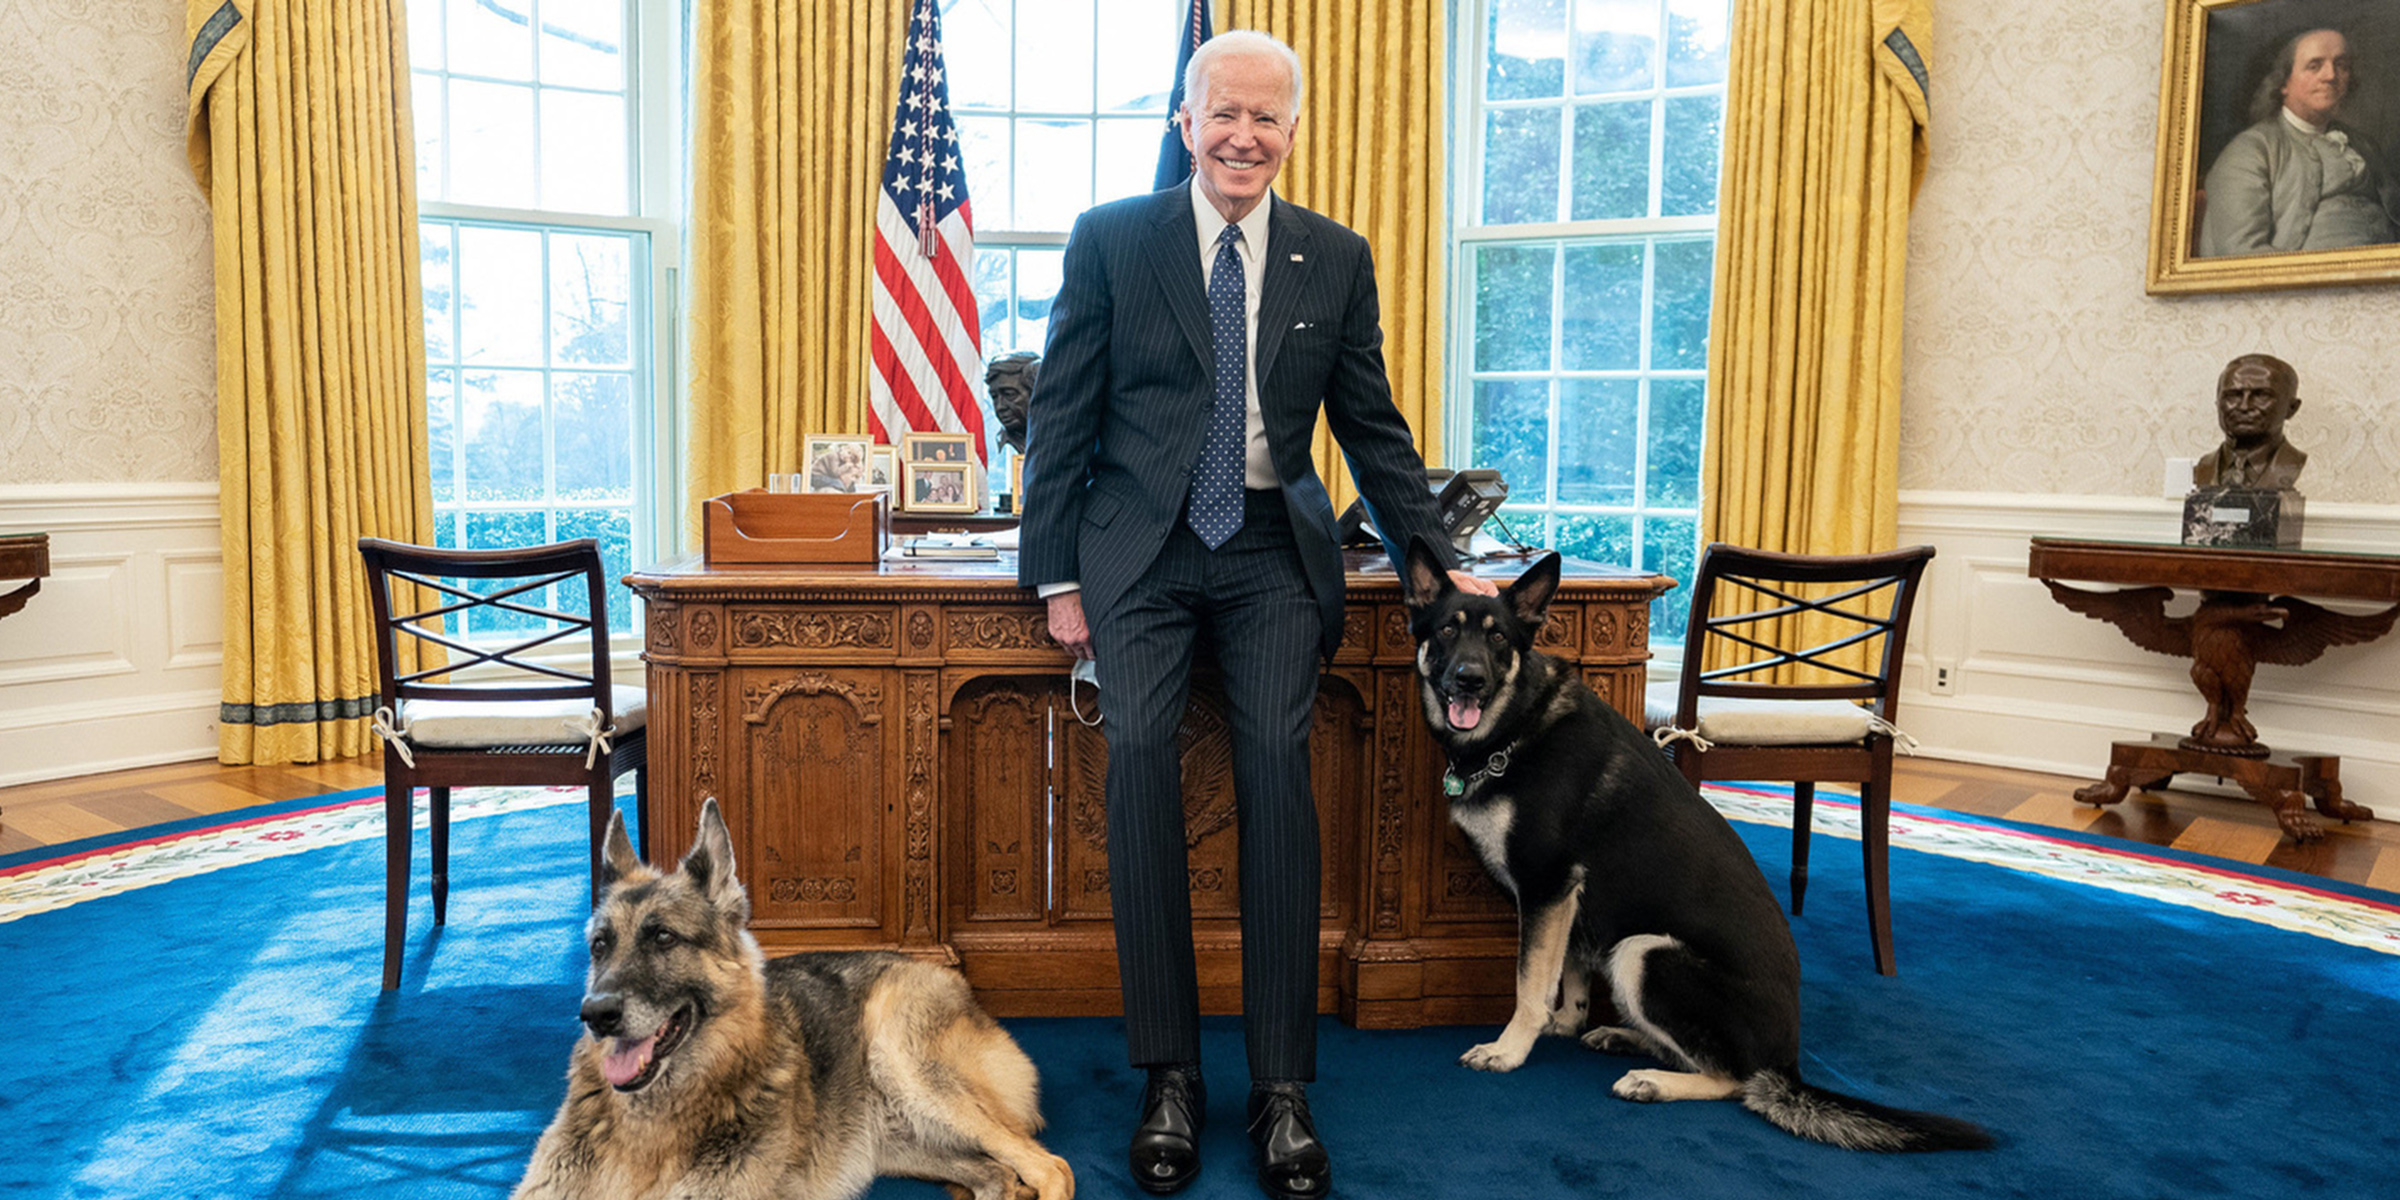 President Joe Biden poses with his dogs in the Oval Office